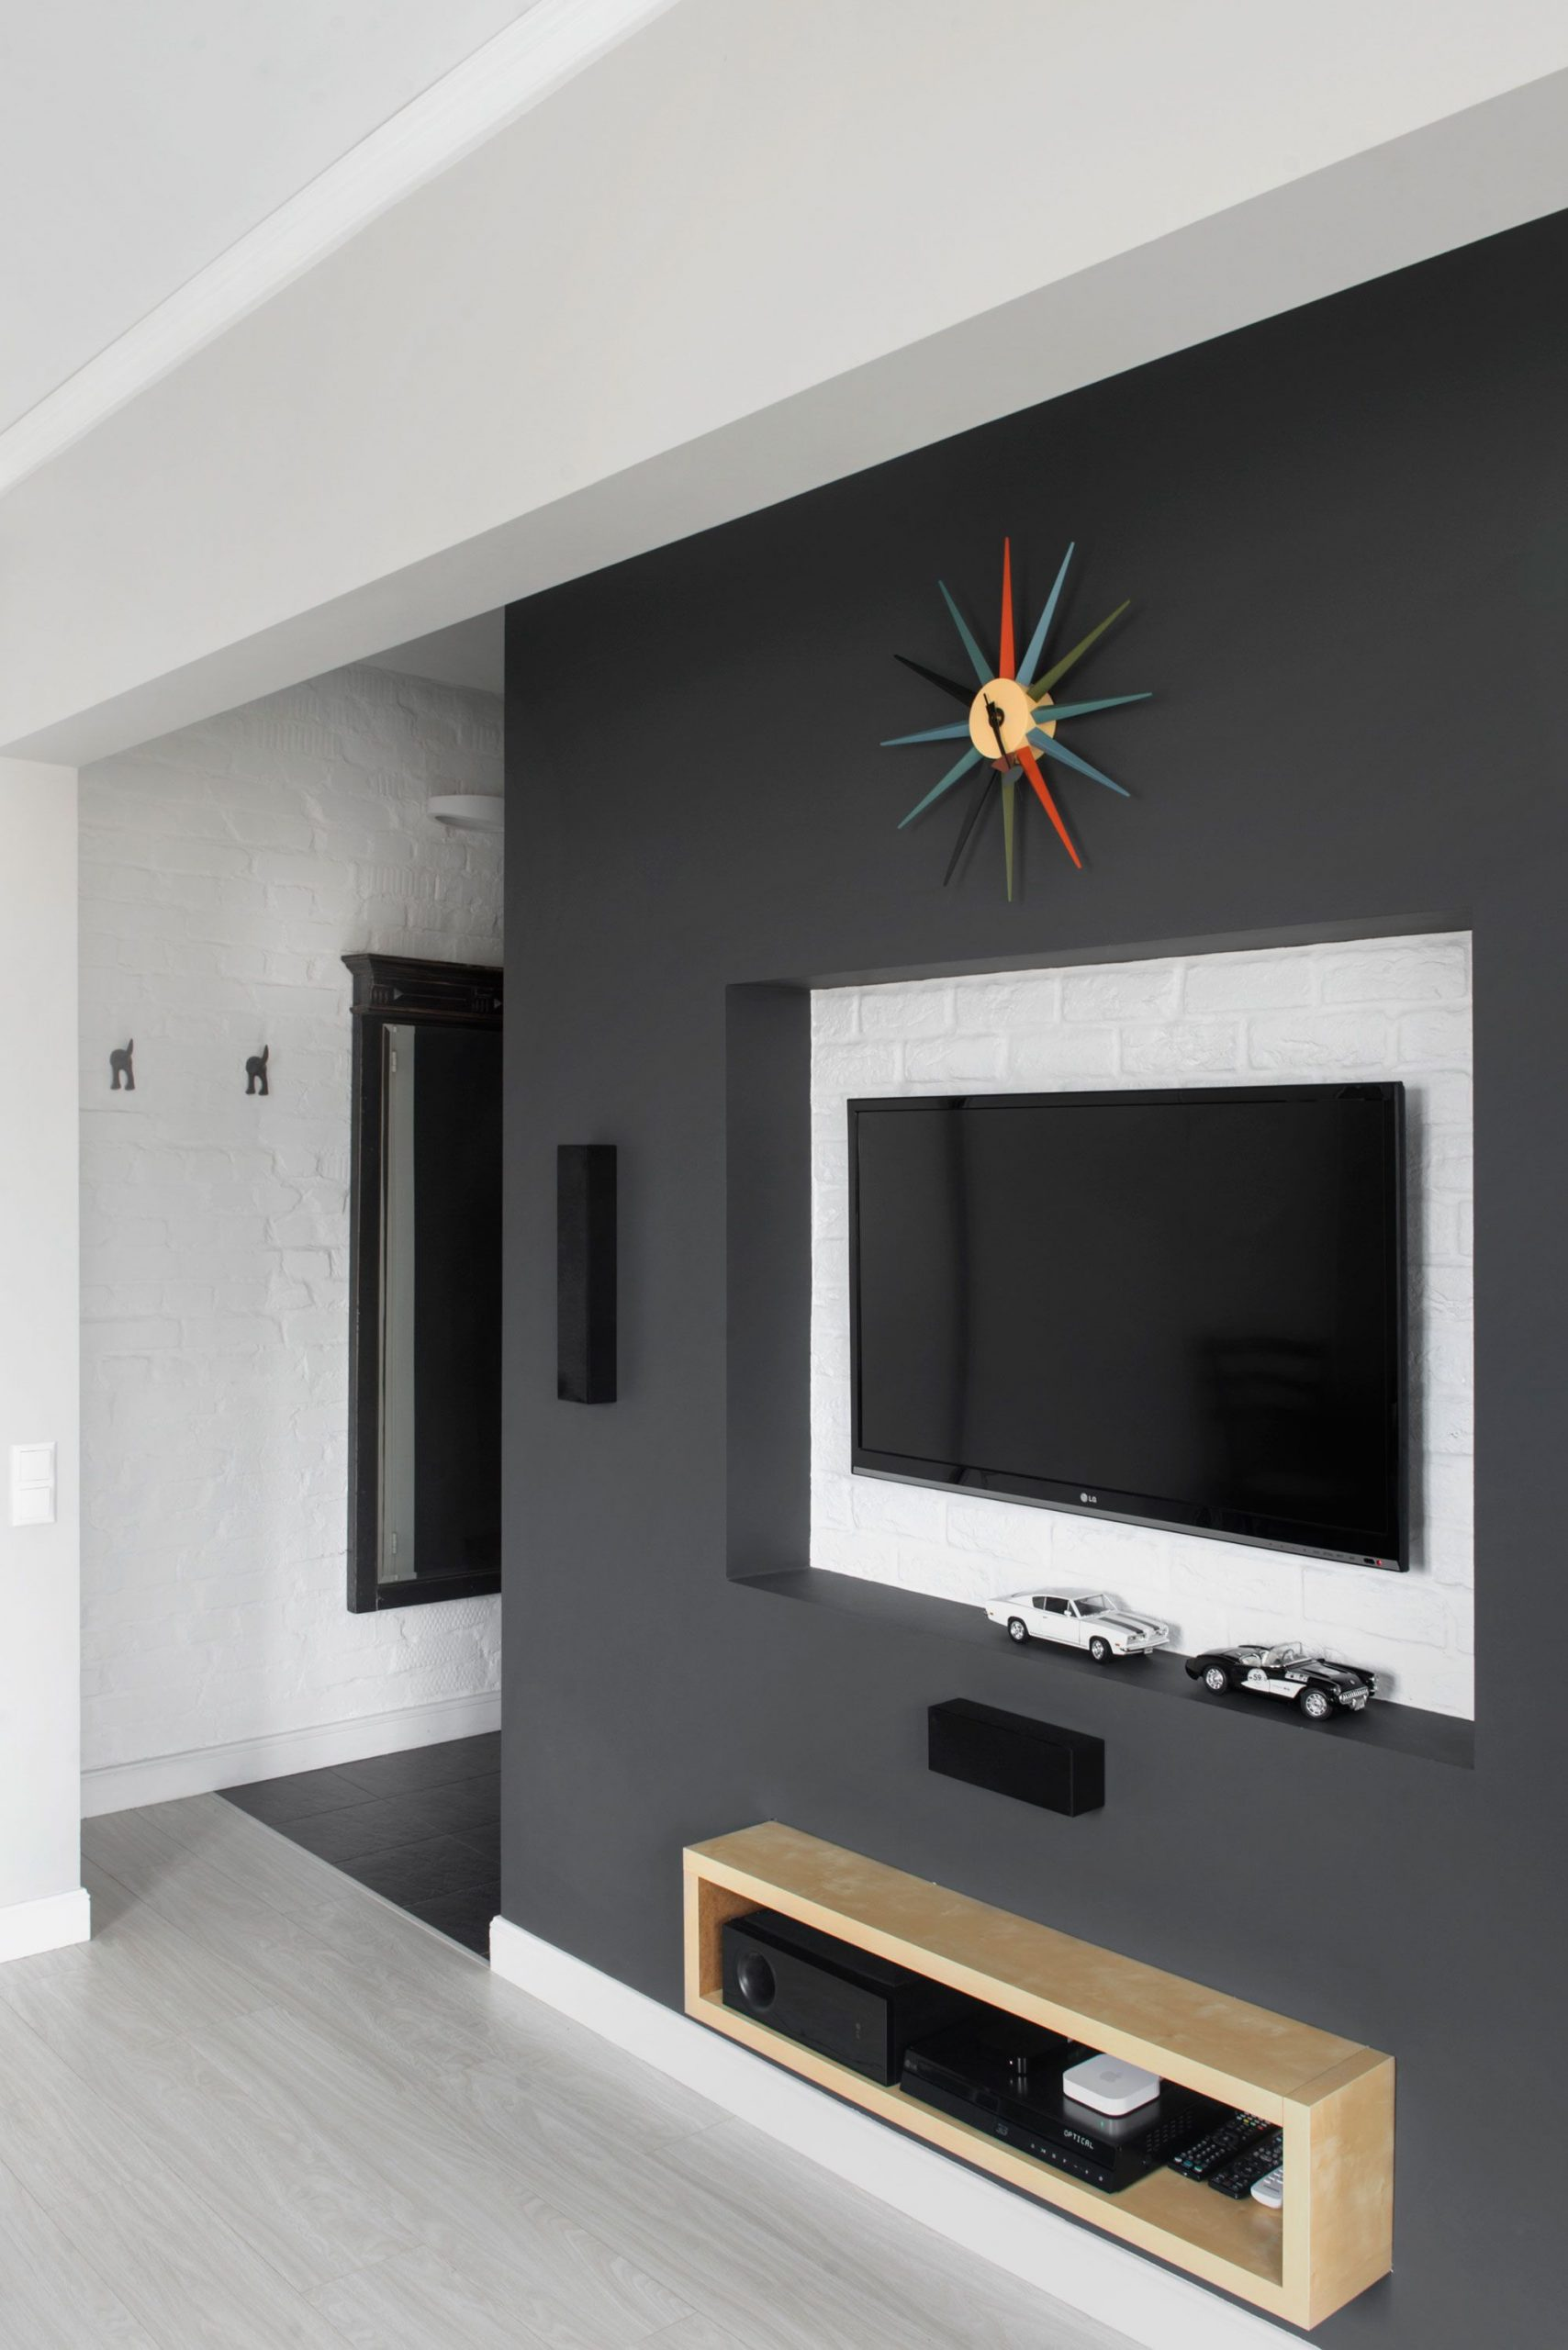 Console Murale Suspendue Imposant Apartment Designed by Maxim Tikhonov Home Interior Among